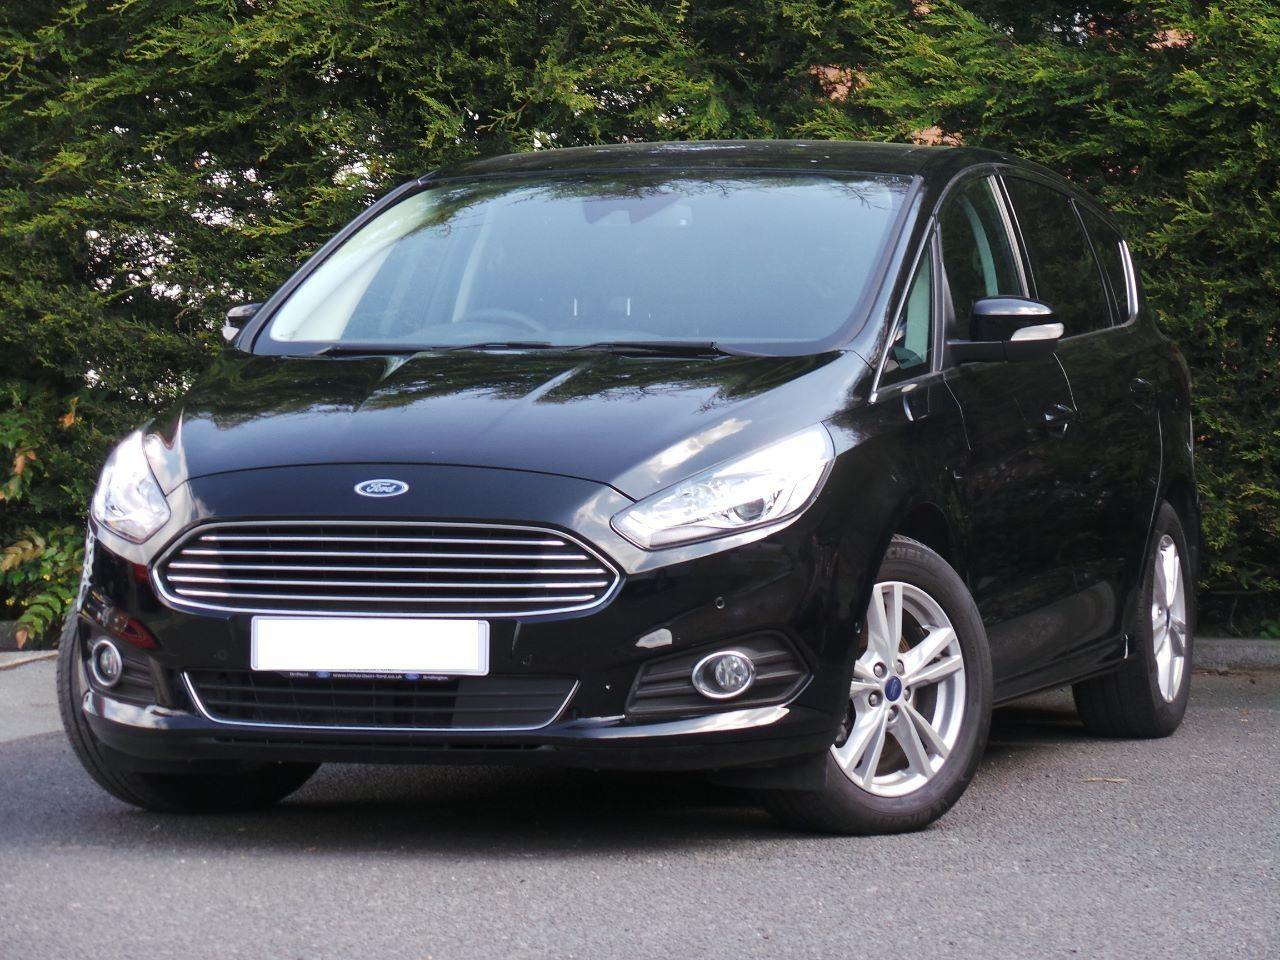 Ford S-MAX 2.0 TDCI Titanium 150ps AUTO 2019/69 plate MPV Petrol Colour Choice